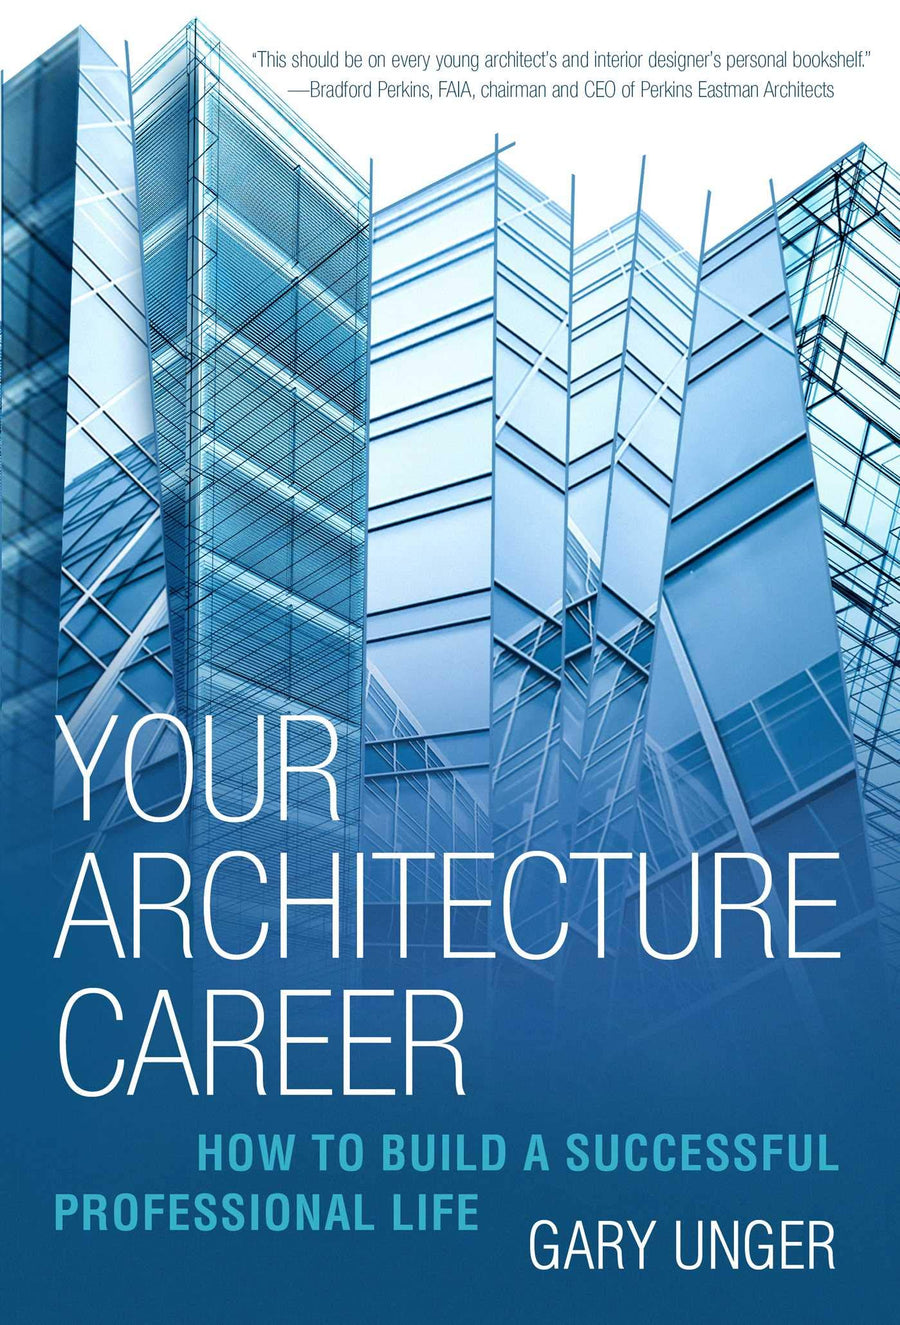 Your Architecture Career: How to Build a Successful Professional Life by Gary Unger